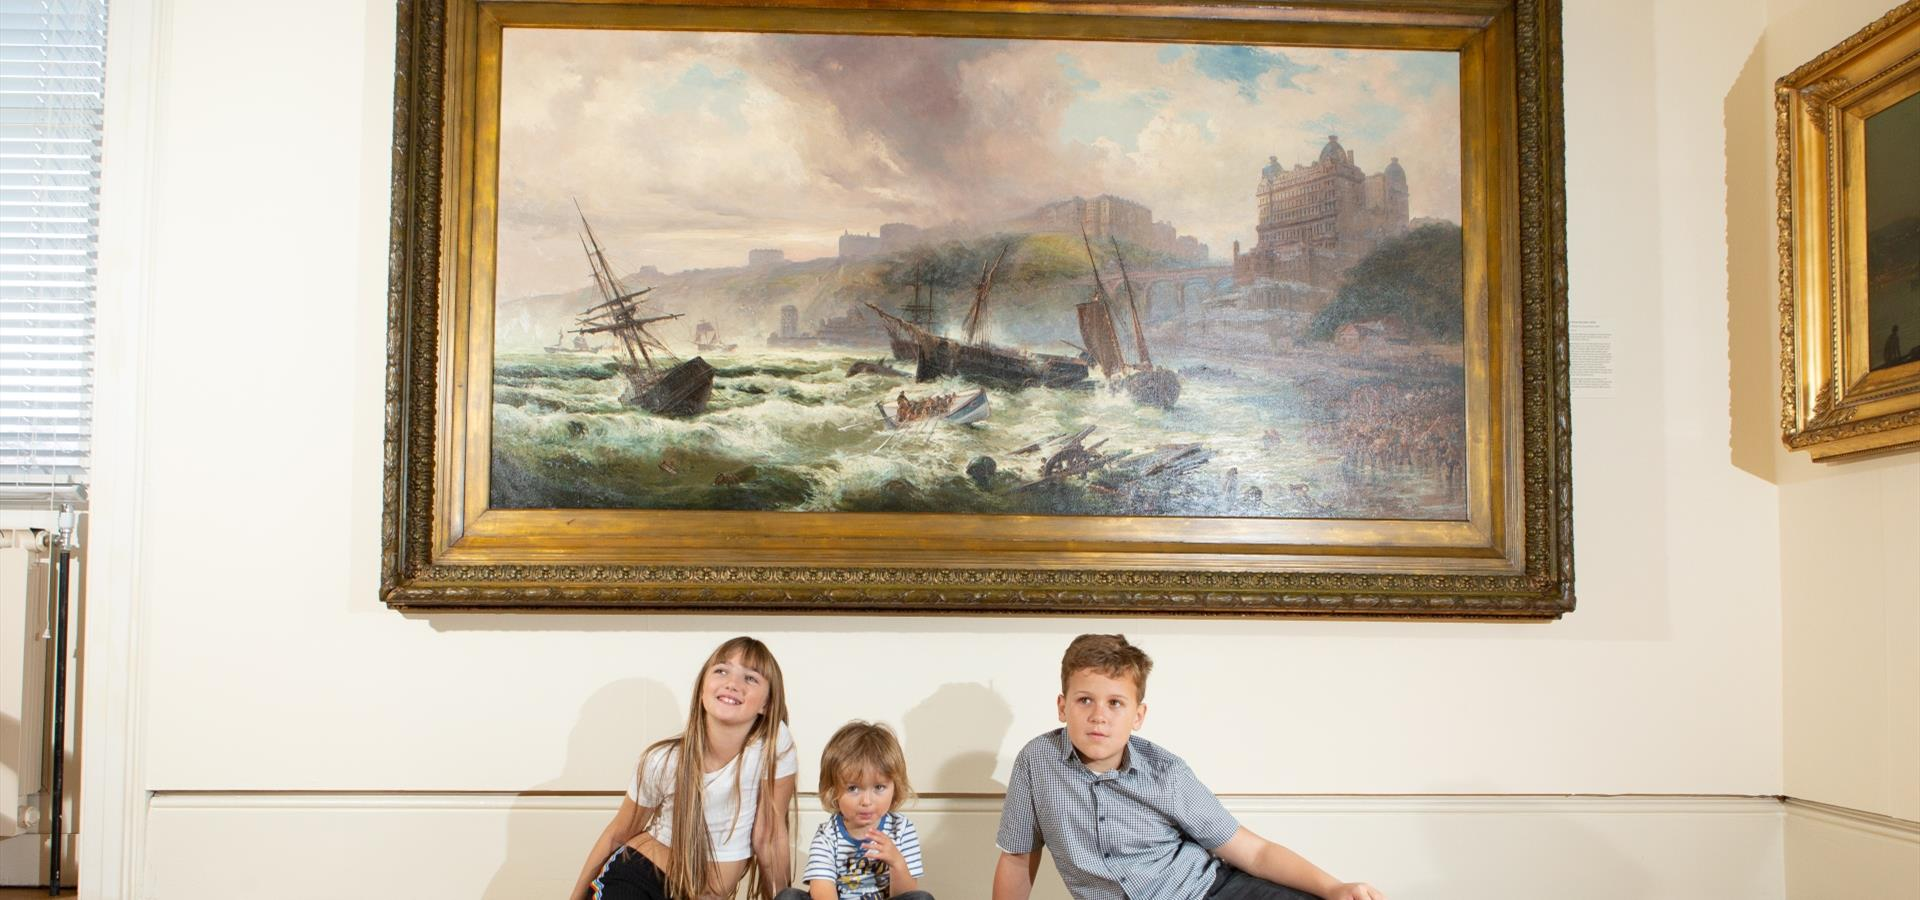 An image at Scarborough Art Gallery by Duncan Lomax